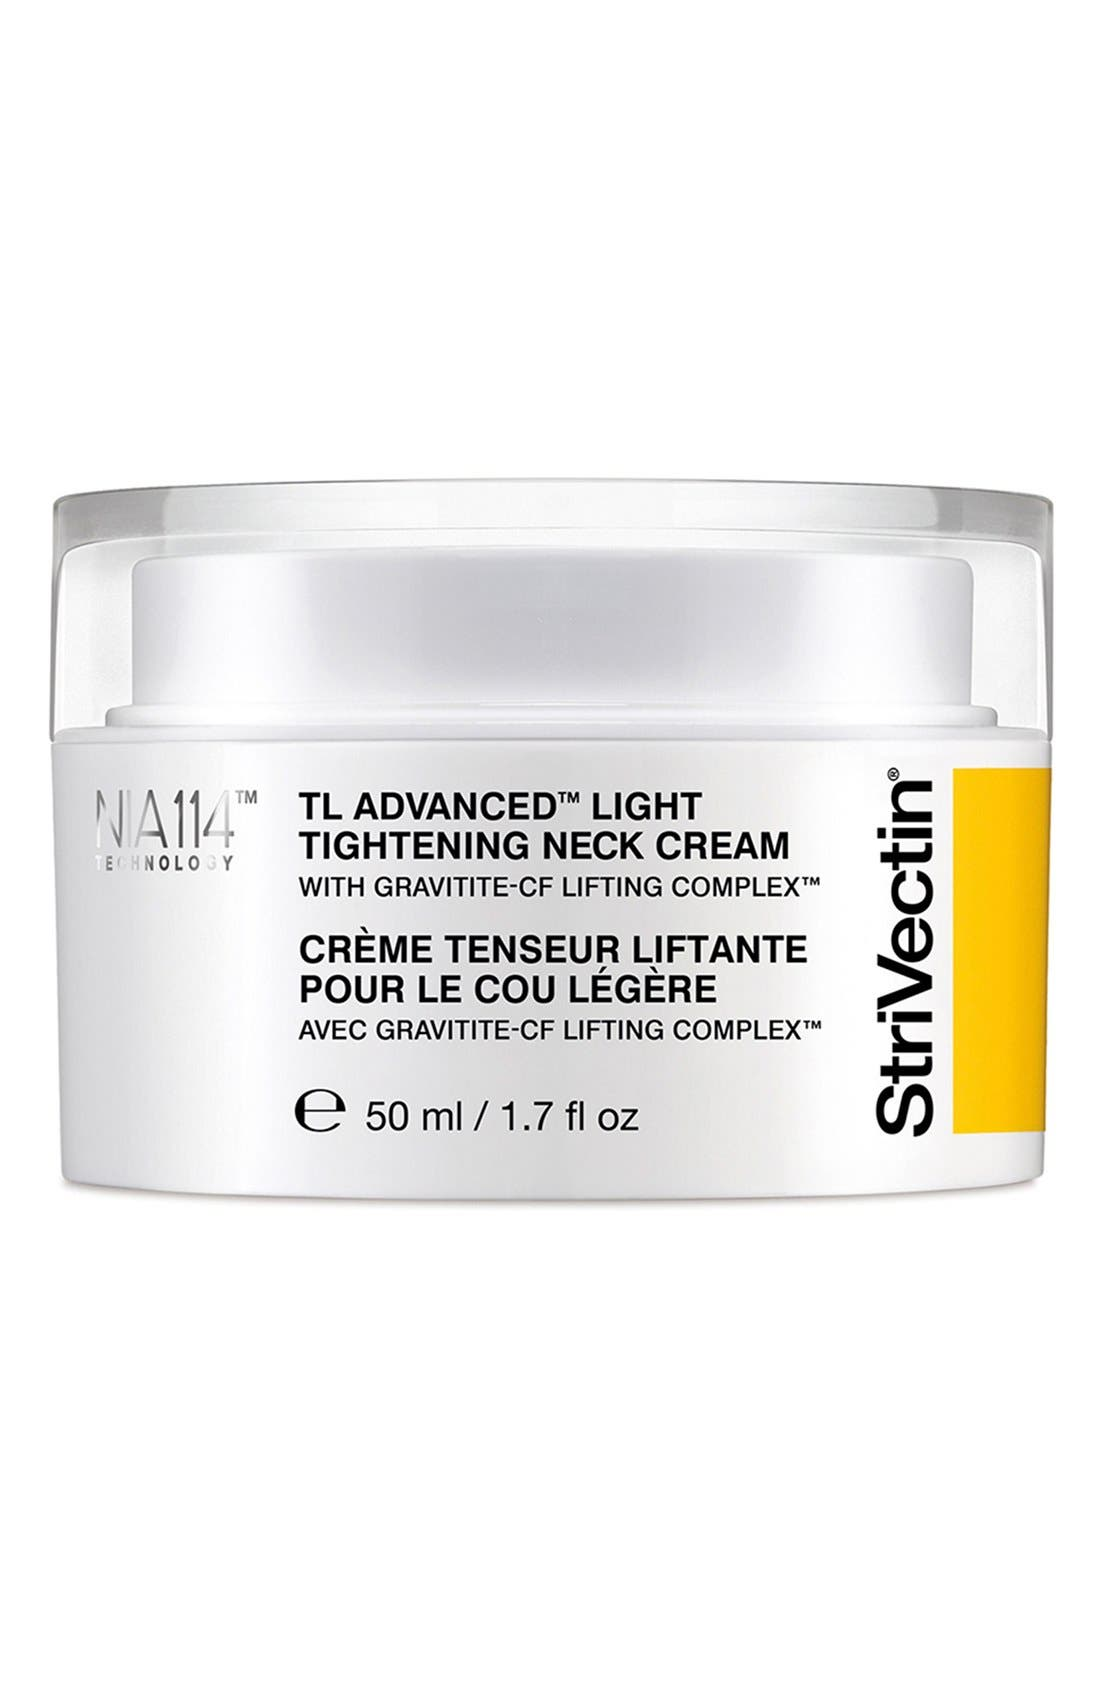 StriVectin-TL™ Advanced Light Tightening Neck Cream